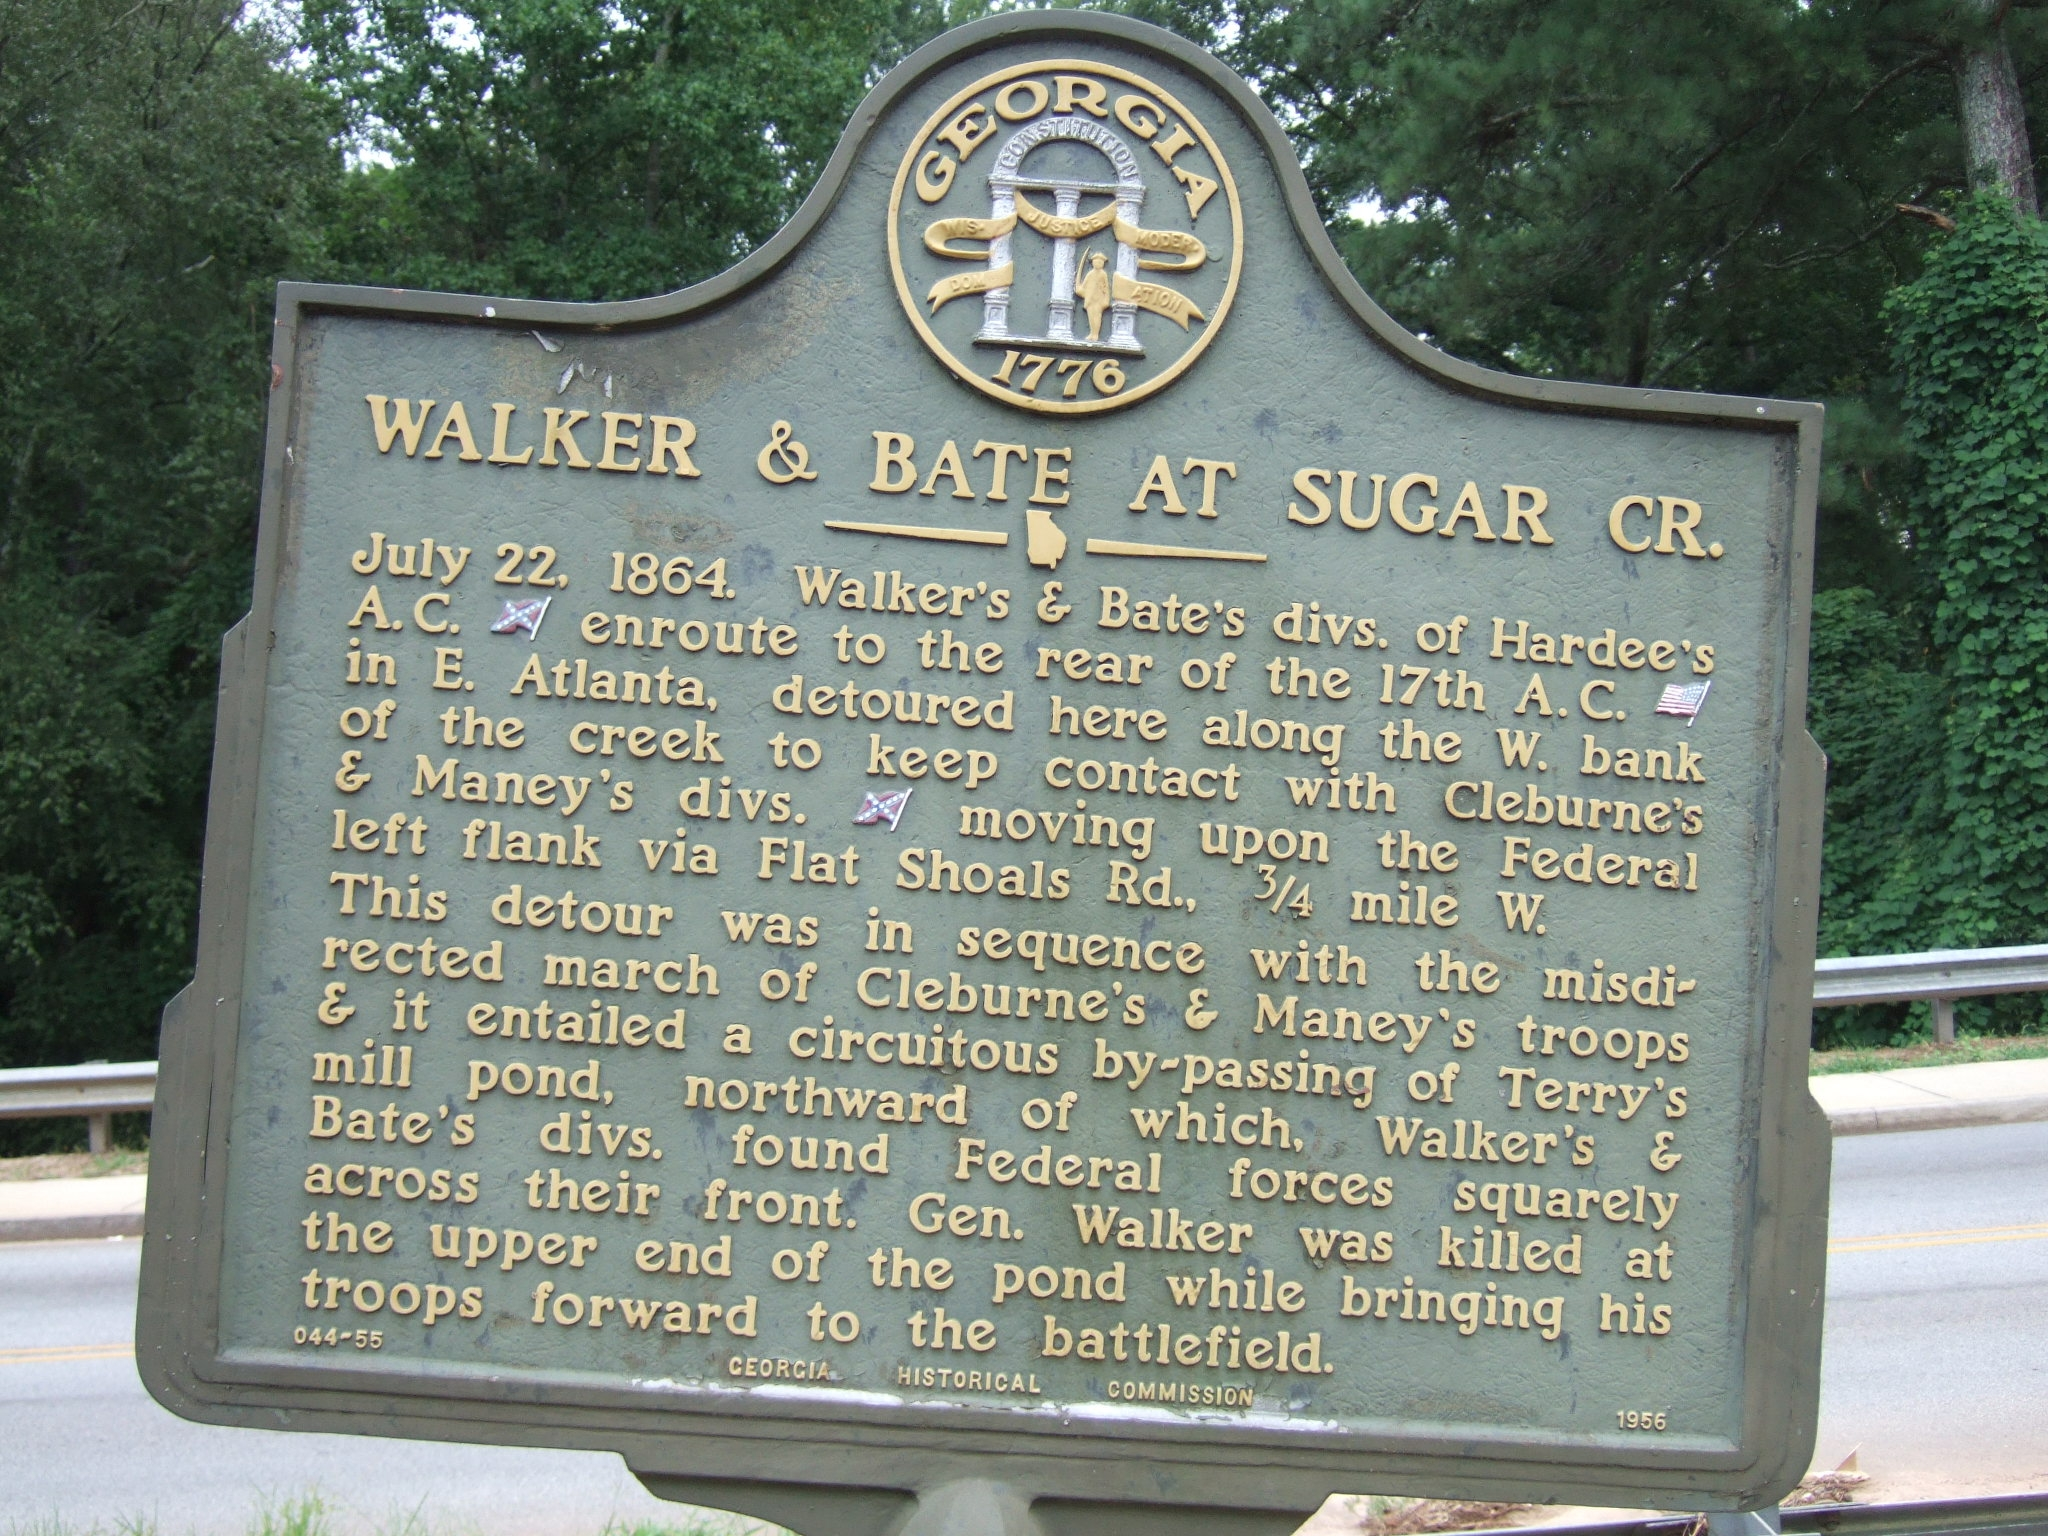 Walker & Bate At Sugar Creek Marker